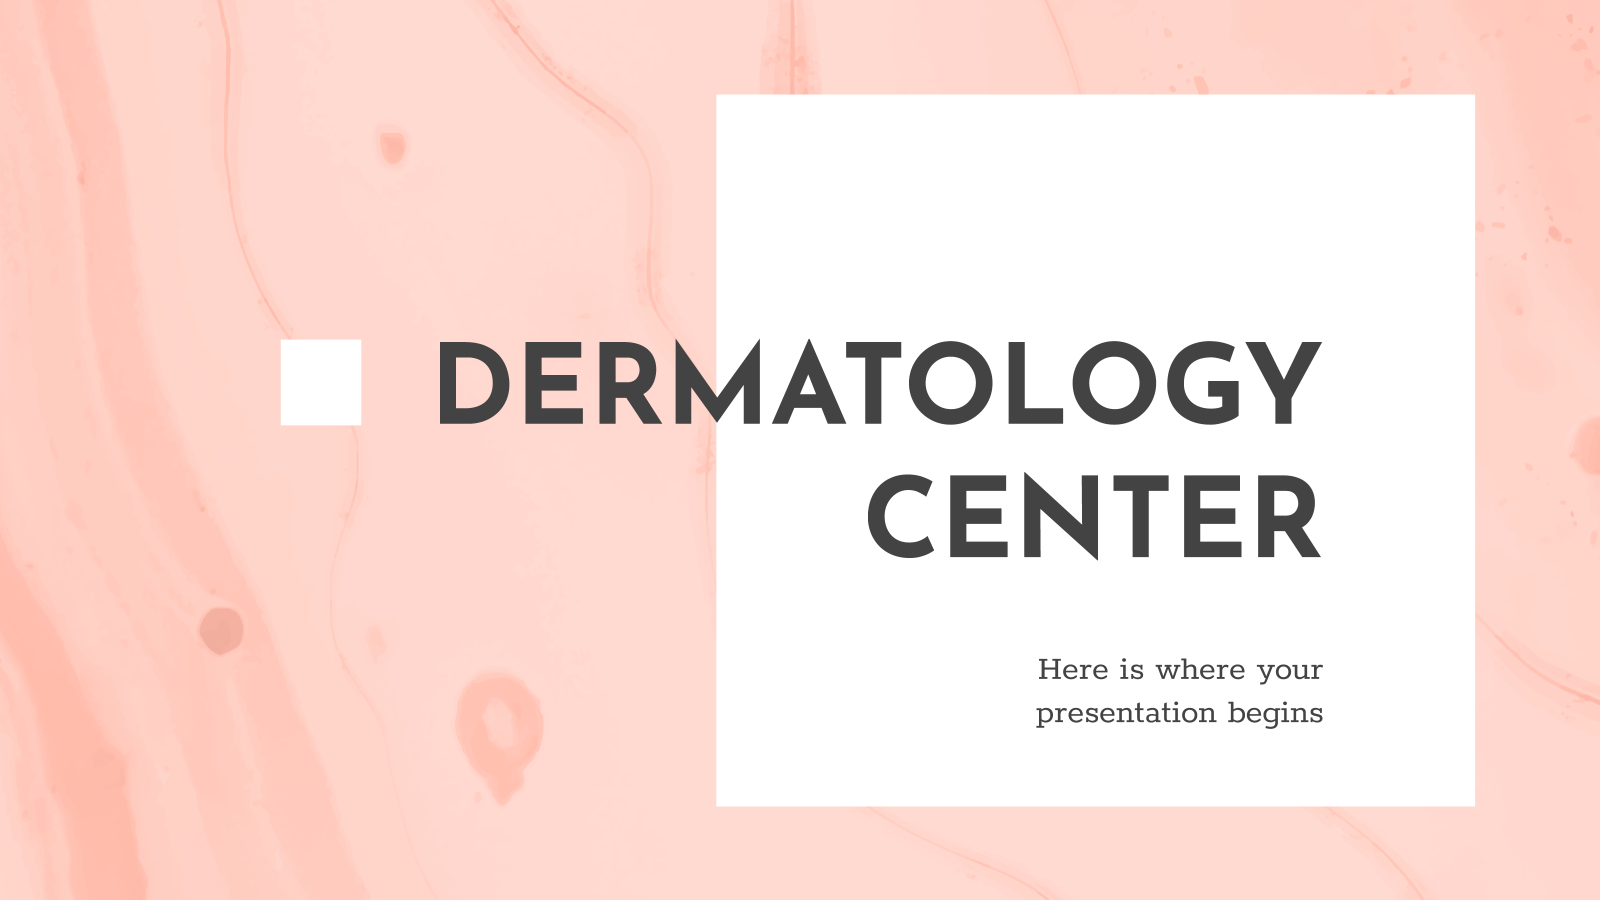 Dermatology Center presentation template